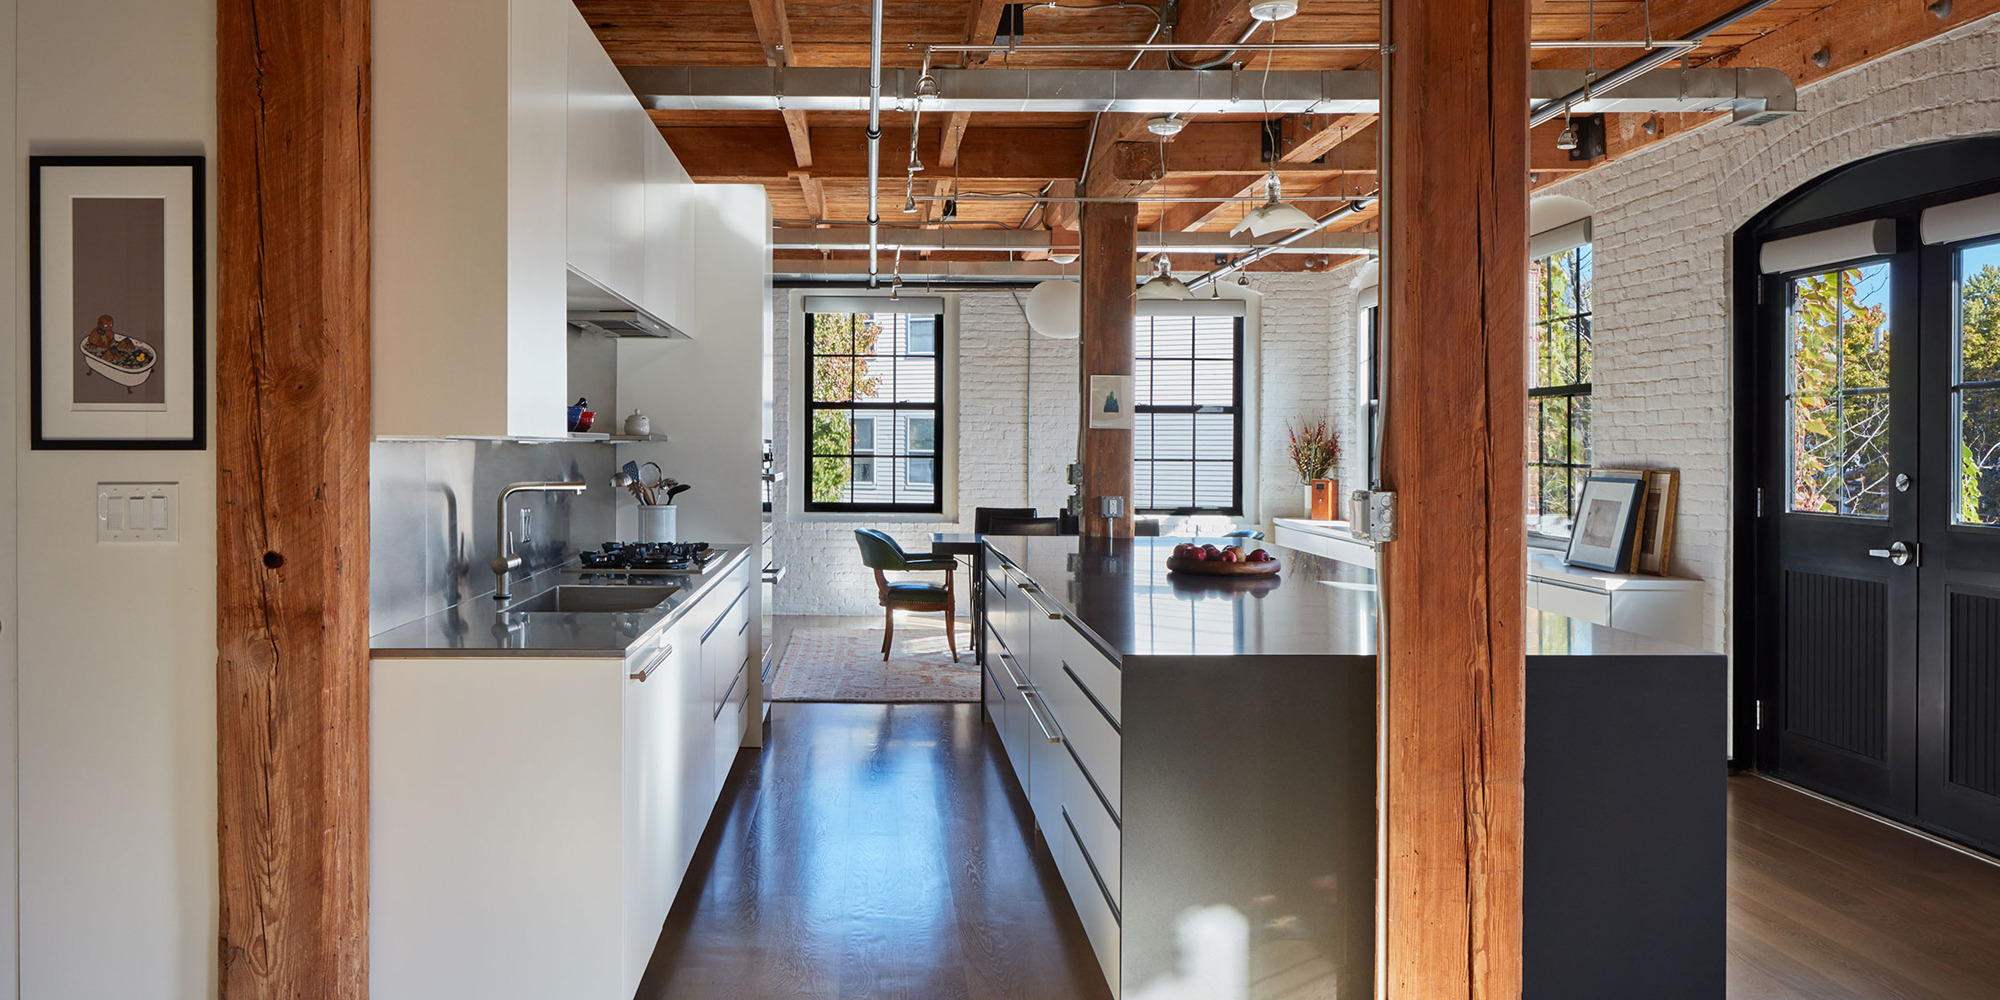 Tannery Home Remodel by Shake Architecture and Construction